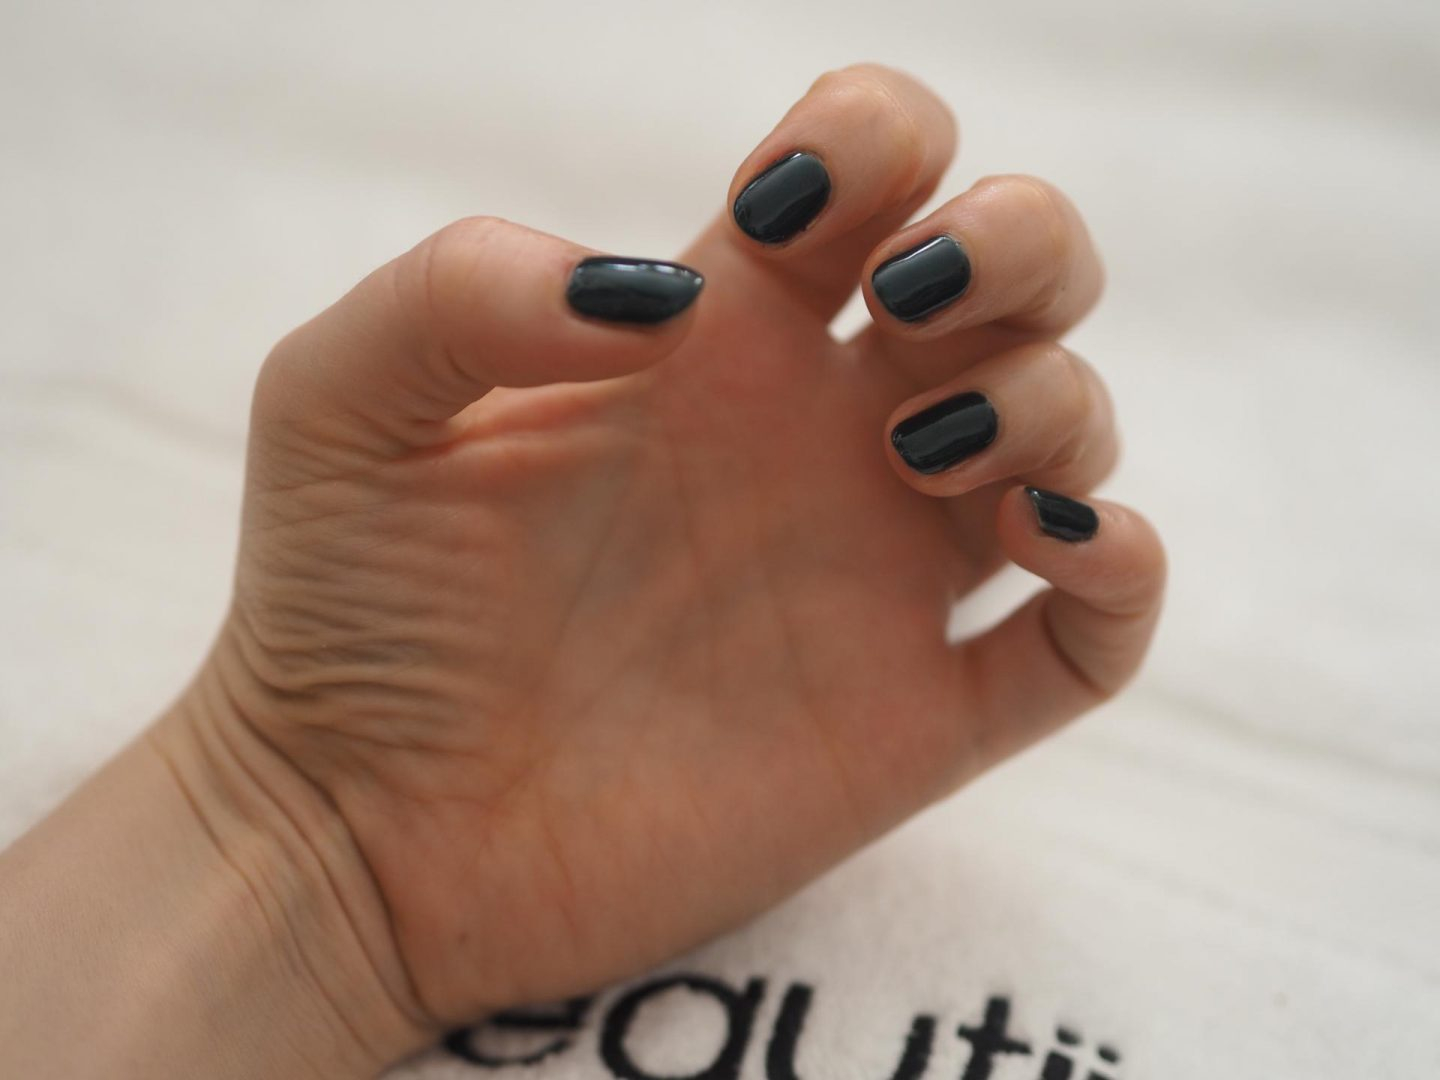 Valentine's Day gift ideas for her and Beautii Nails on Demand and Shellac Manicure